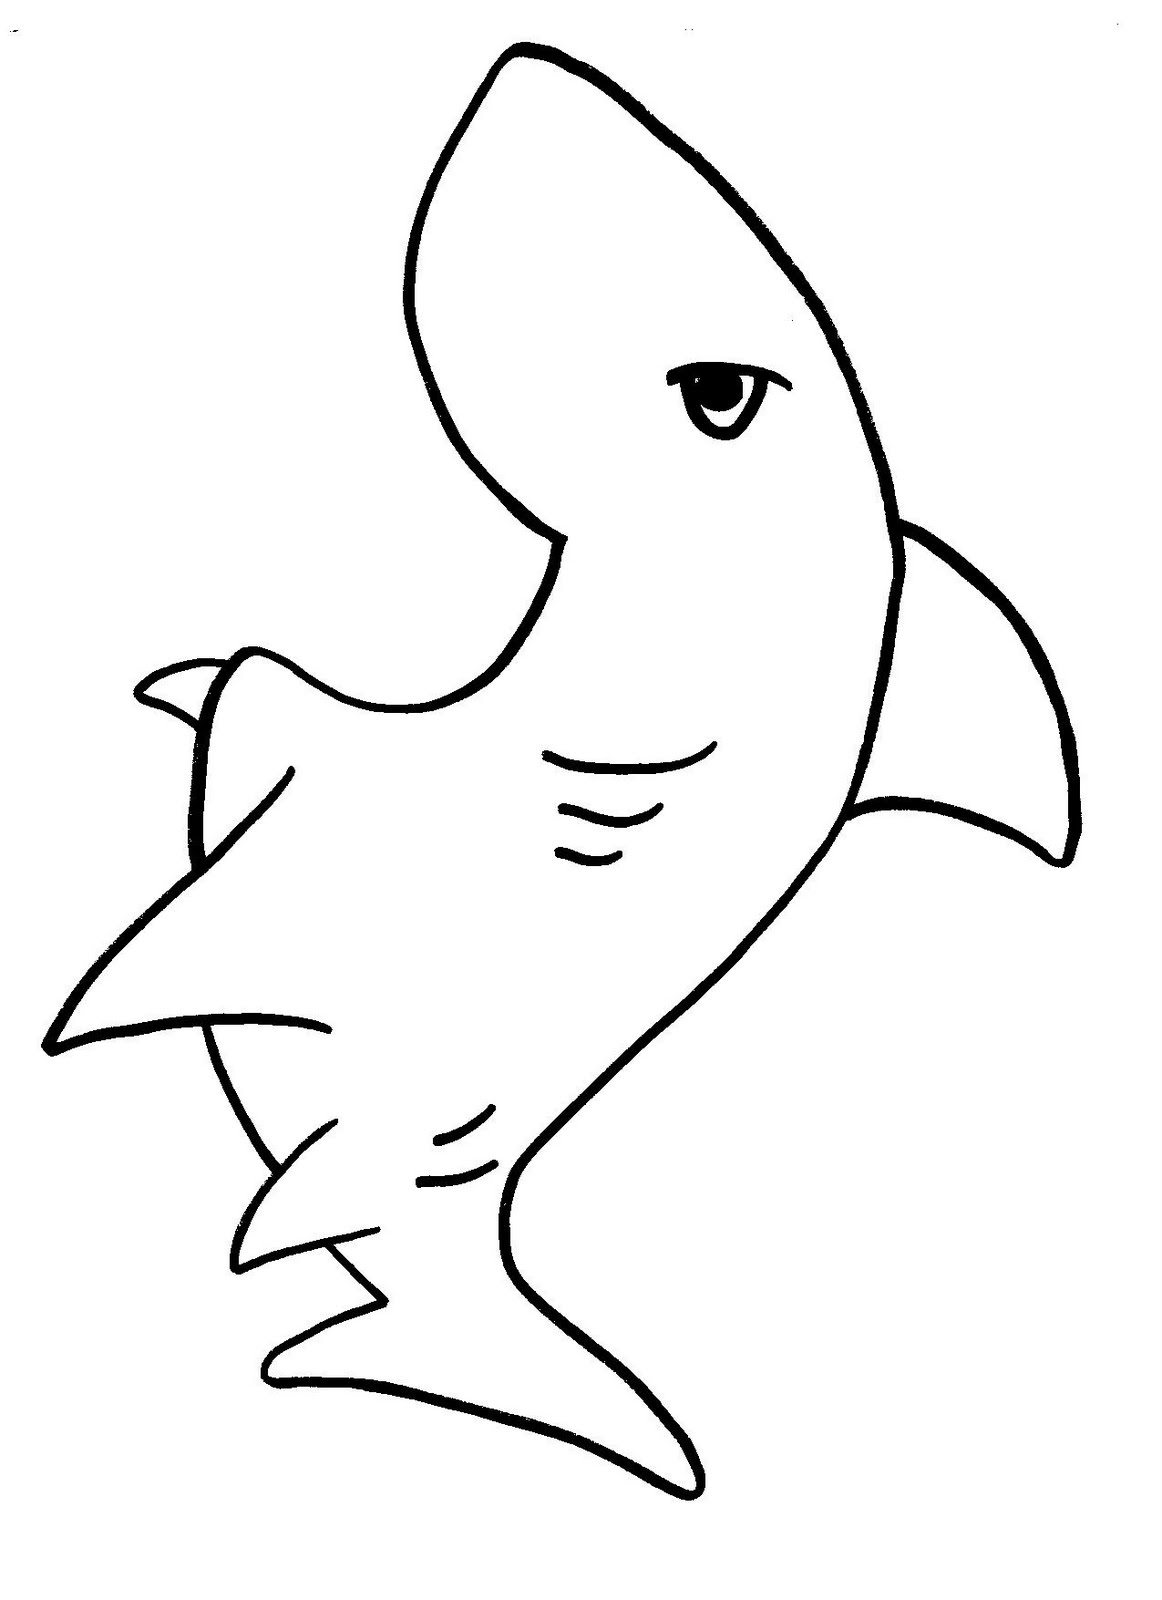 shark coloring pictures to print free shark coloring pages print pictures coloring to shark